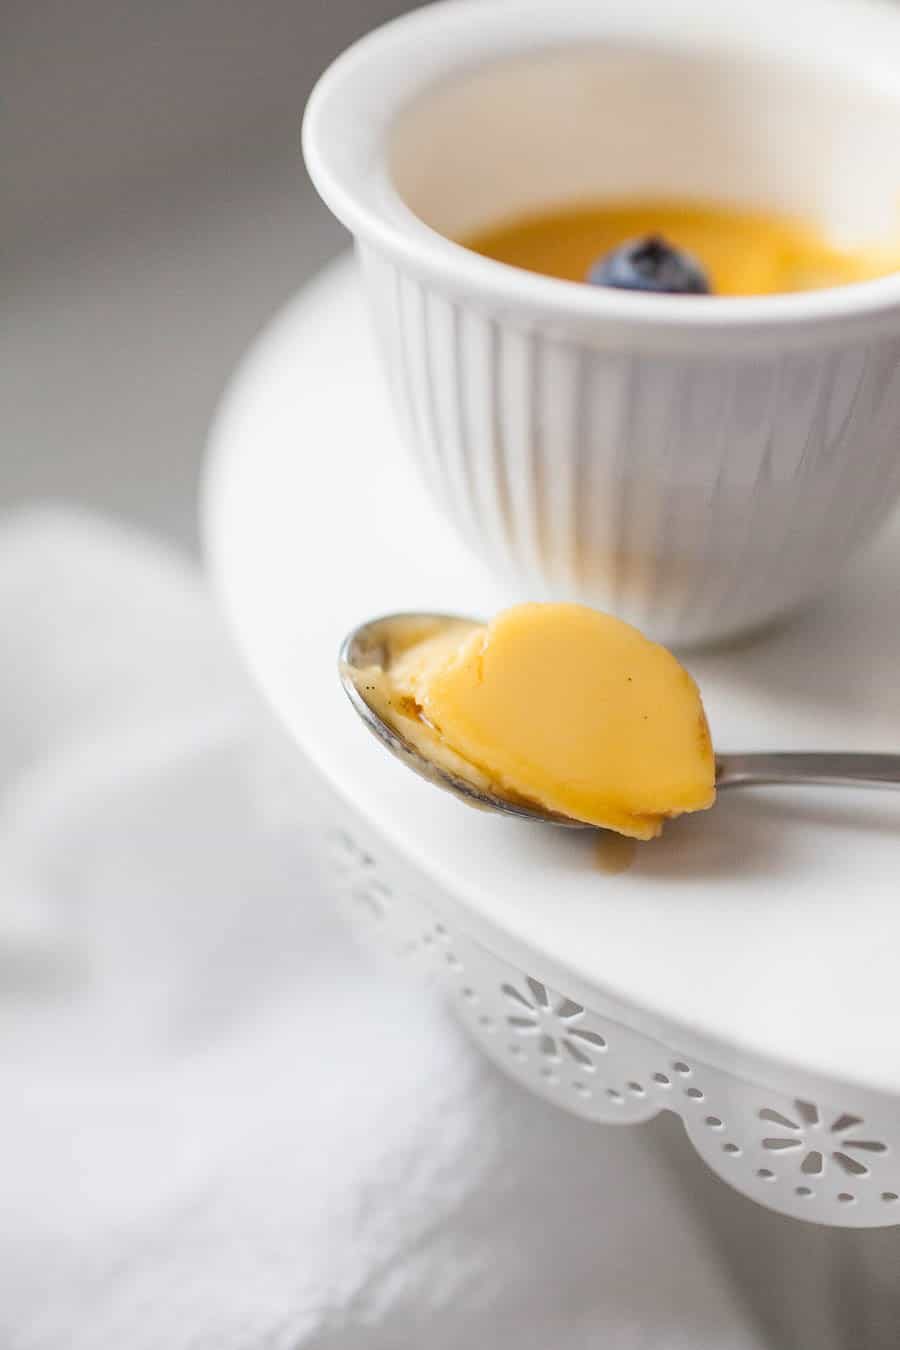 If you need a simple but elegant dessert that is refined sugar free, Maple Pots de Crème are the perfect choice. These French dessert custards are beyond easy to make, made with a few simple ingredients like heavy whipping cream, egg yolks, maple syrup, vanilla bean and a dash of salt. Whoever you serve these Maple Pots de Crème to will be impressed by the taste and you will be impressed by the simplicity of making these decadent desserts.